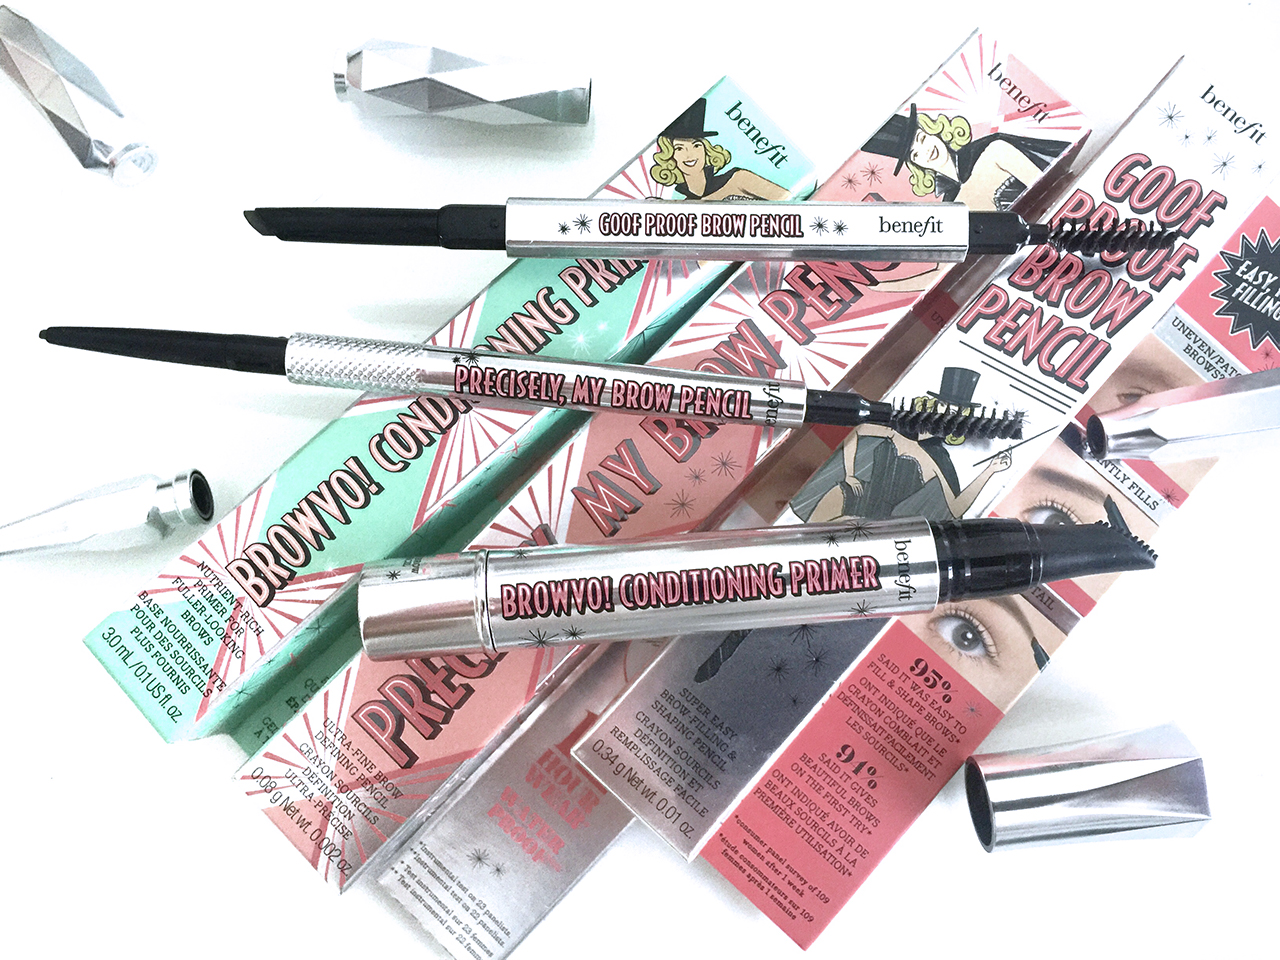 Benefit Brow Collection 2016 - Browvo Conditioning Primer, Precisely My Brow Pencil, Goof Proof Brow Pencil